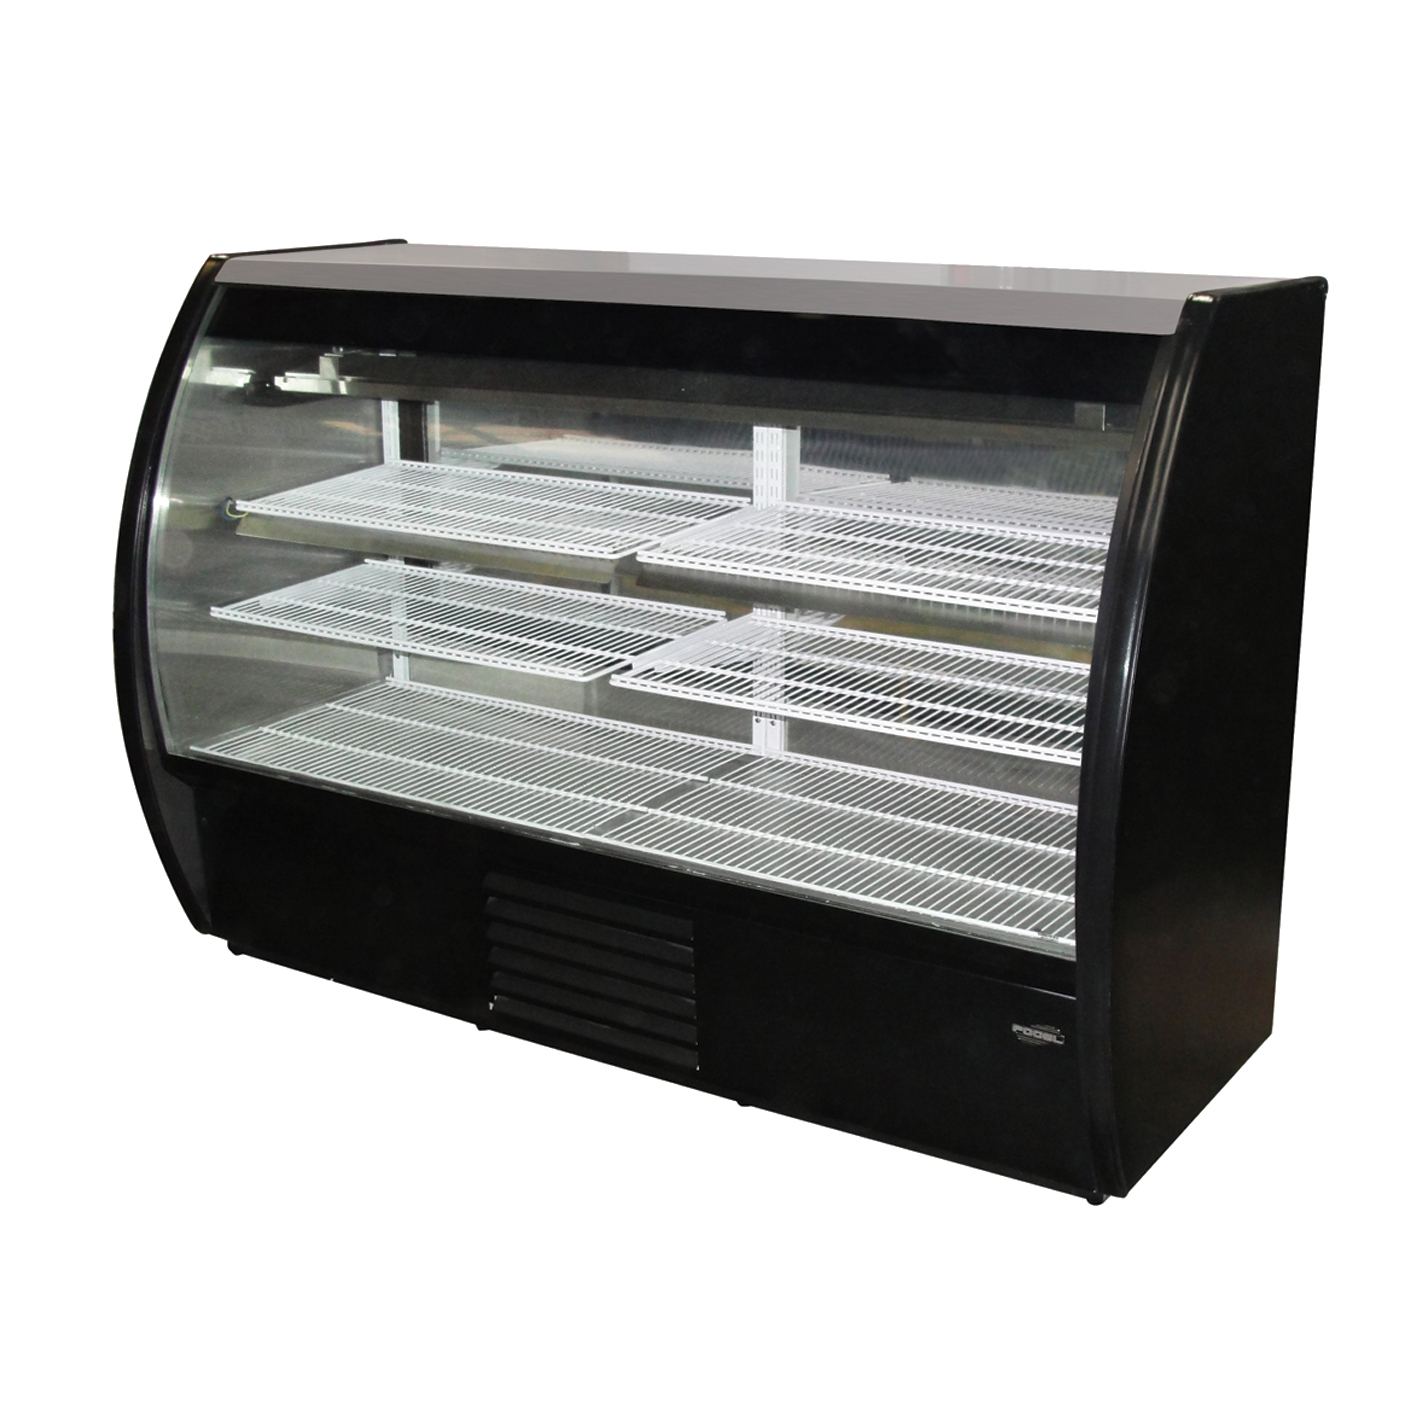 Fogel USA MIRAGE-4-DC-G display case, refrigerated deli